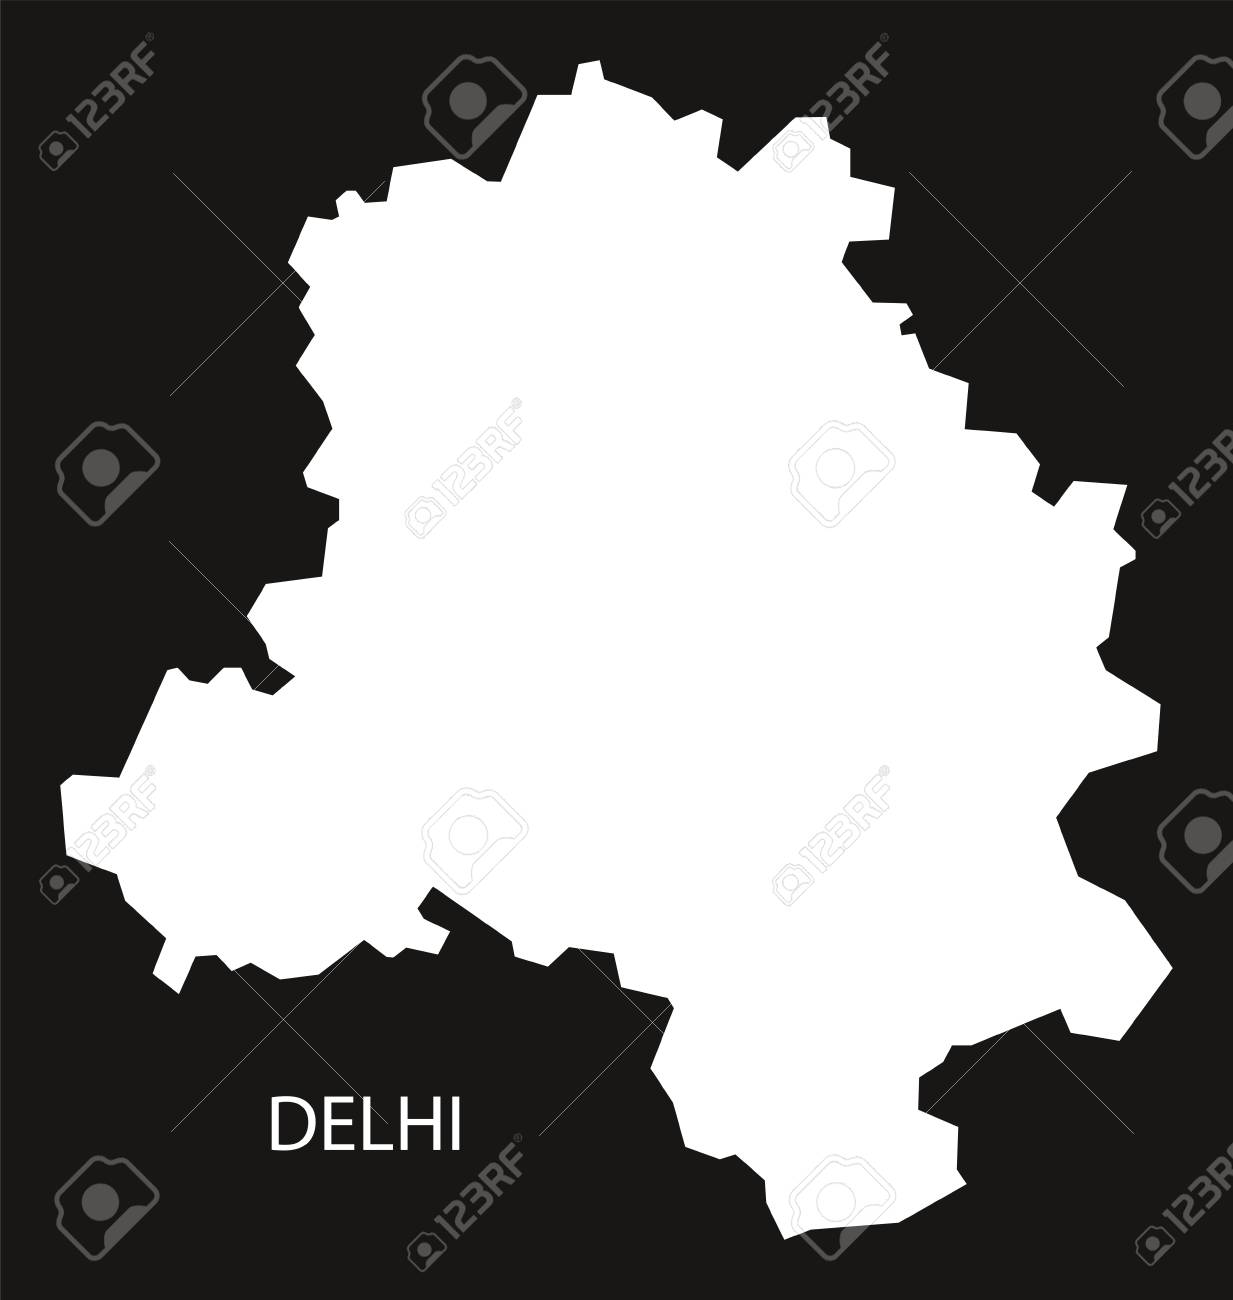 Delhi India Map Black Inverted Silhouette Royalty Free Cliparts